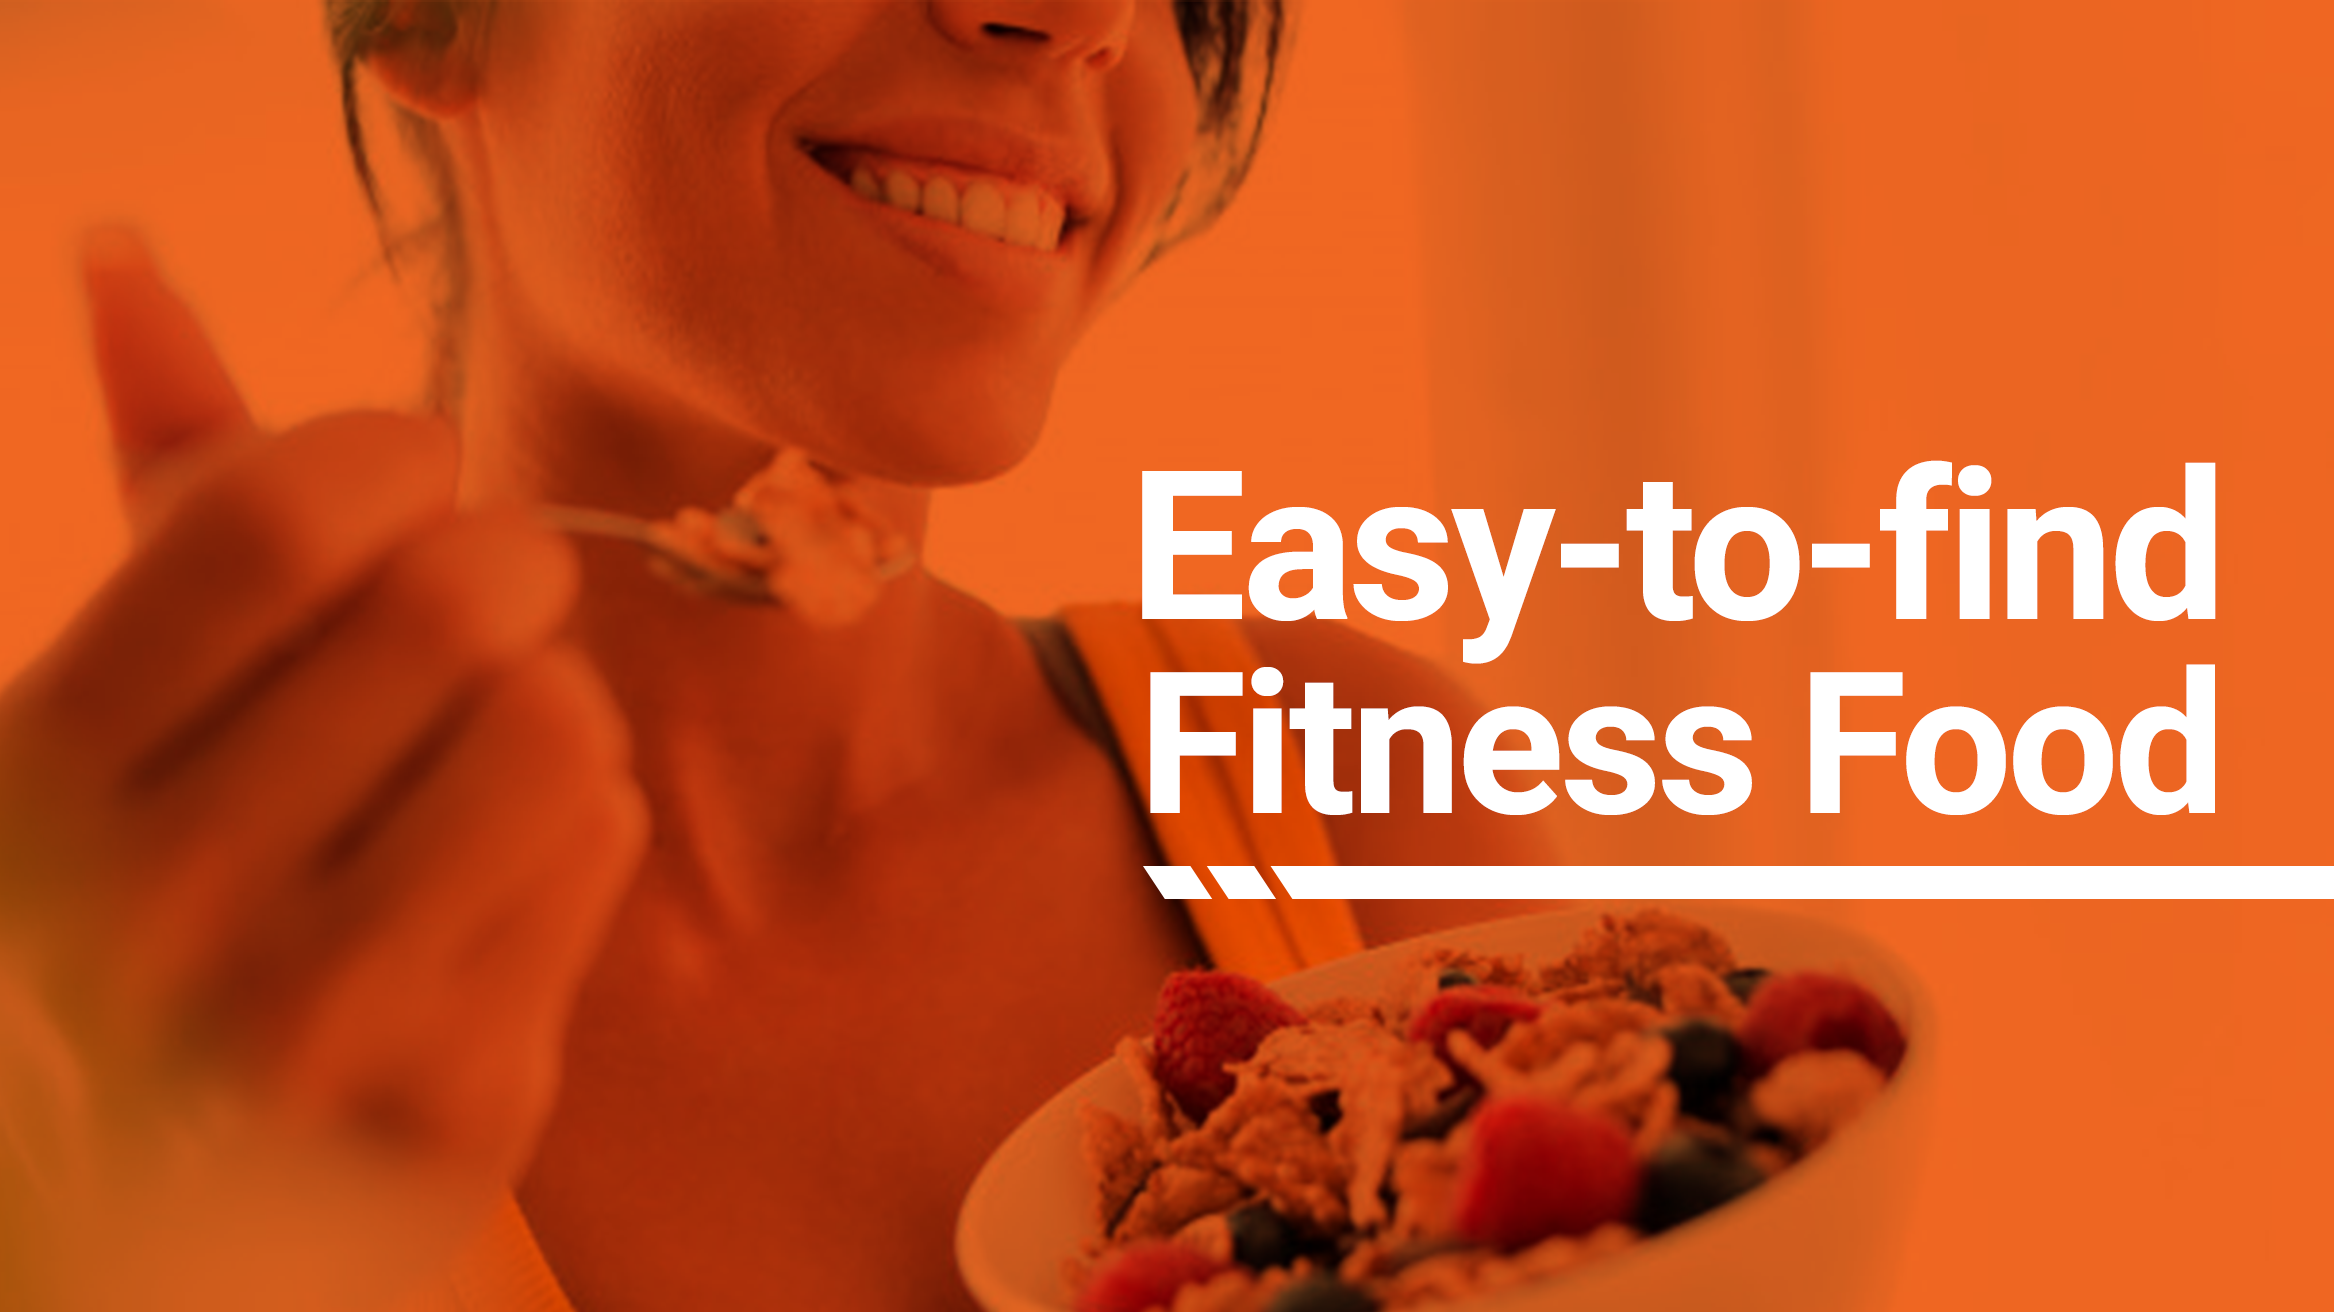 Fitness Food That's Easy to Find! (And Easier to Get via Delivery!)